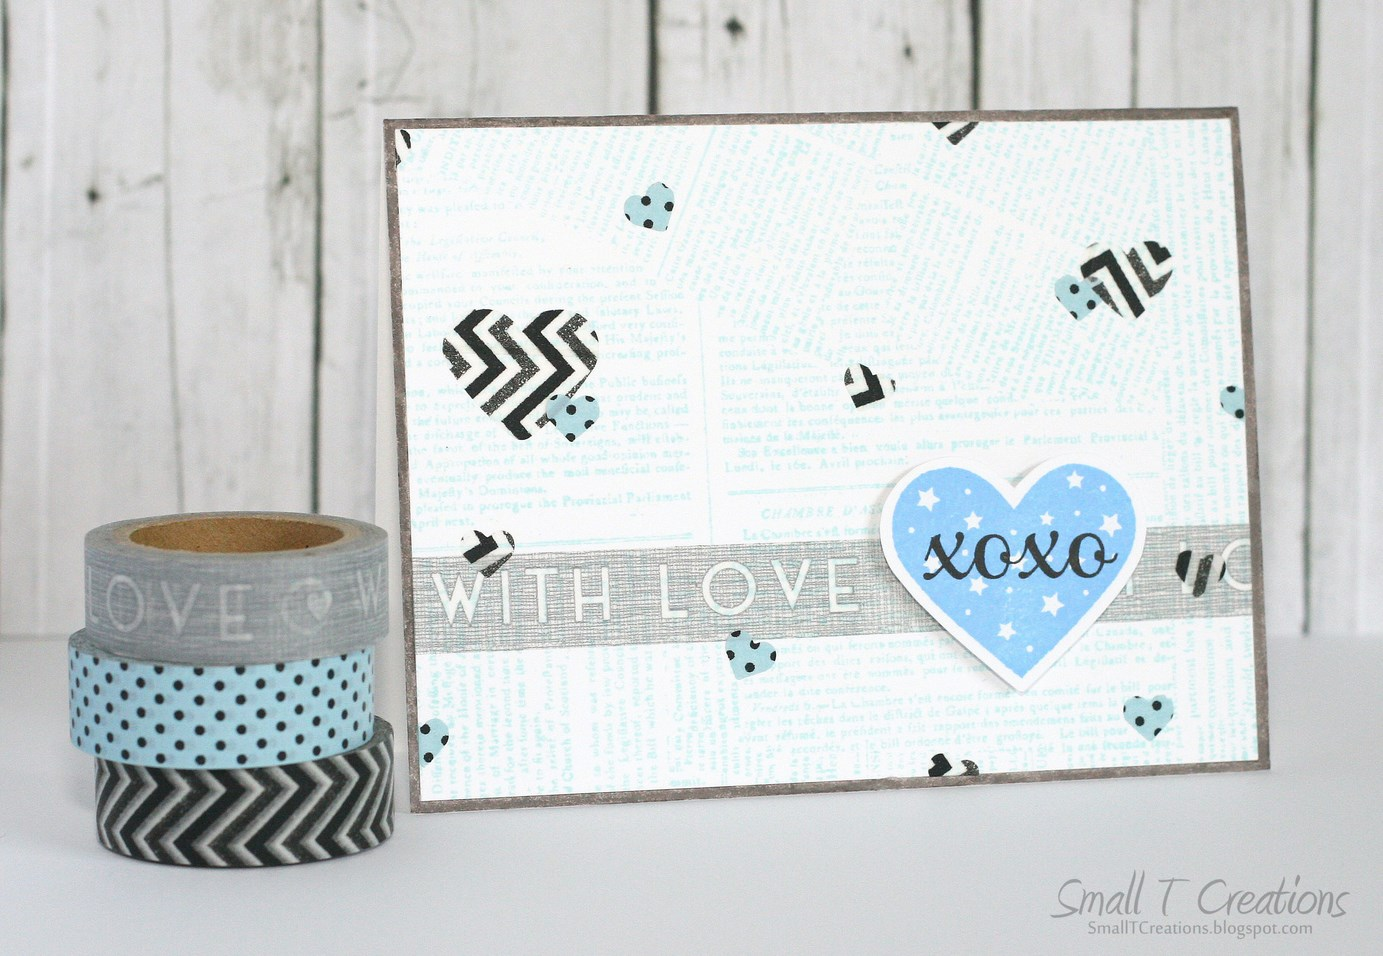 Small T Creations: Masculine Love Card with Washi Tape Hearts. Washi tapes from www.washitapes.nl #washitape #maskingtape